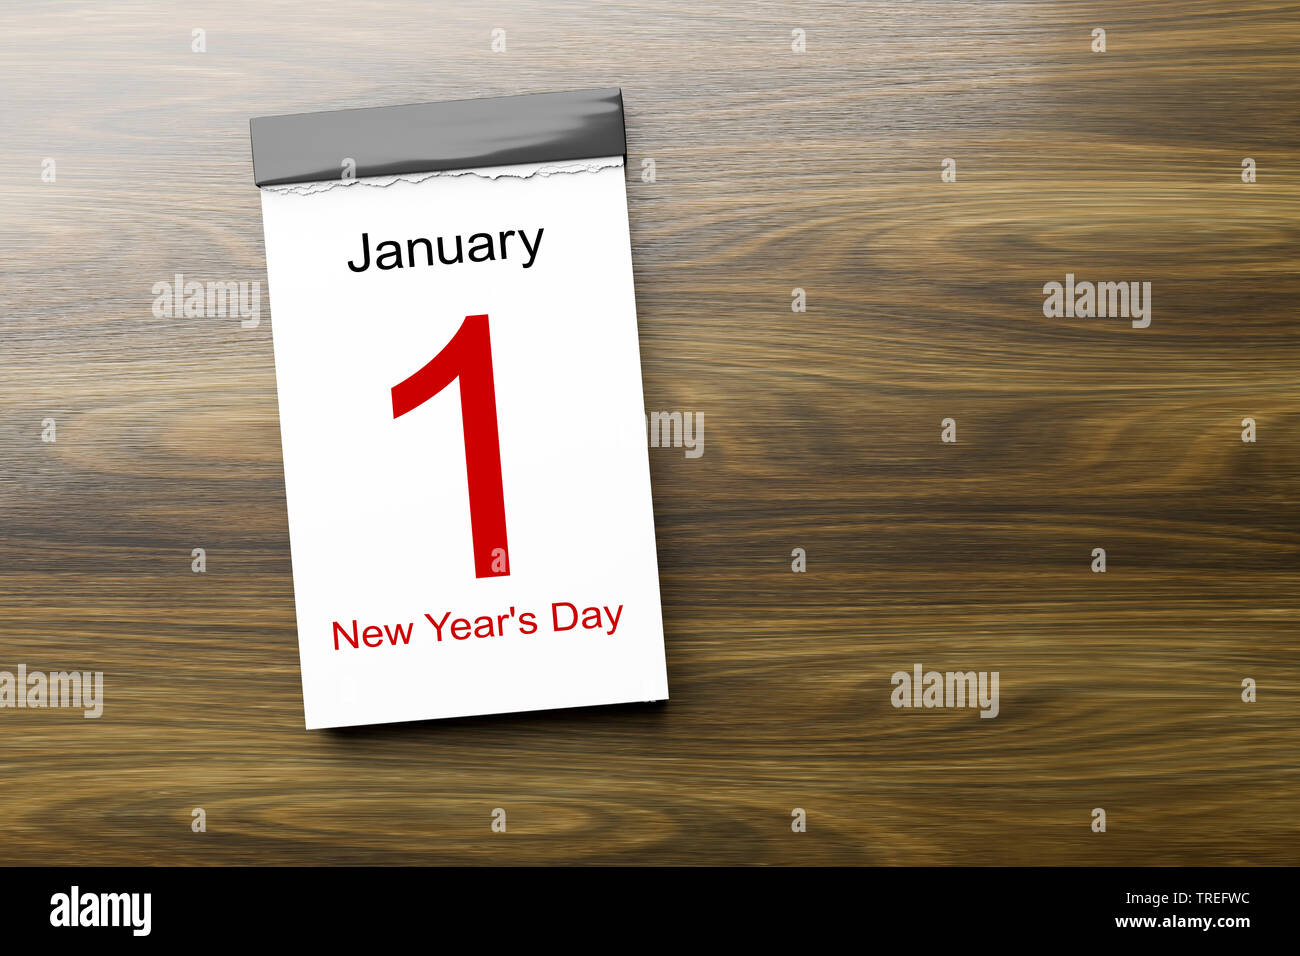 Abreisskalender mit Aufschrift JANUARY 1st - NEW YEAR'S DAY (1 Januar Neujahrstag) | Tear-off calendar lettering JANUARY 1st - NEW YEAR'S DAY | BLWS52 - Stock Image